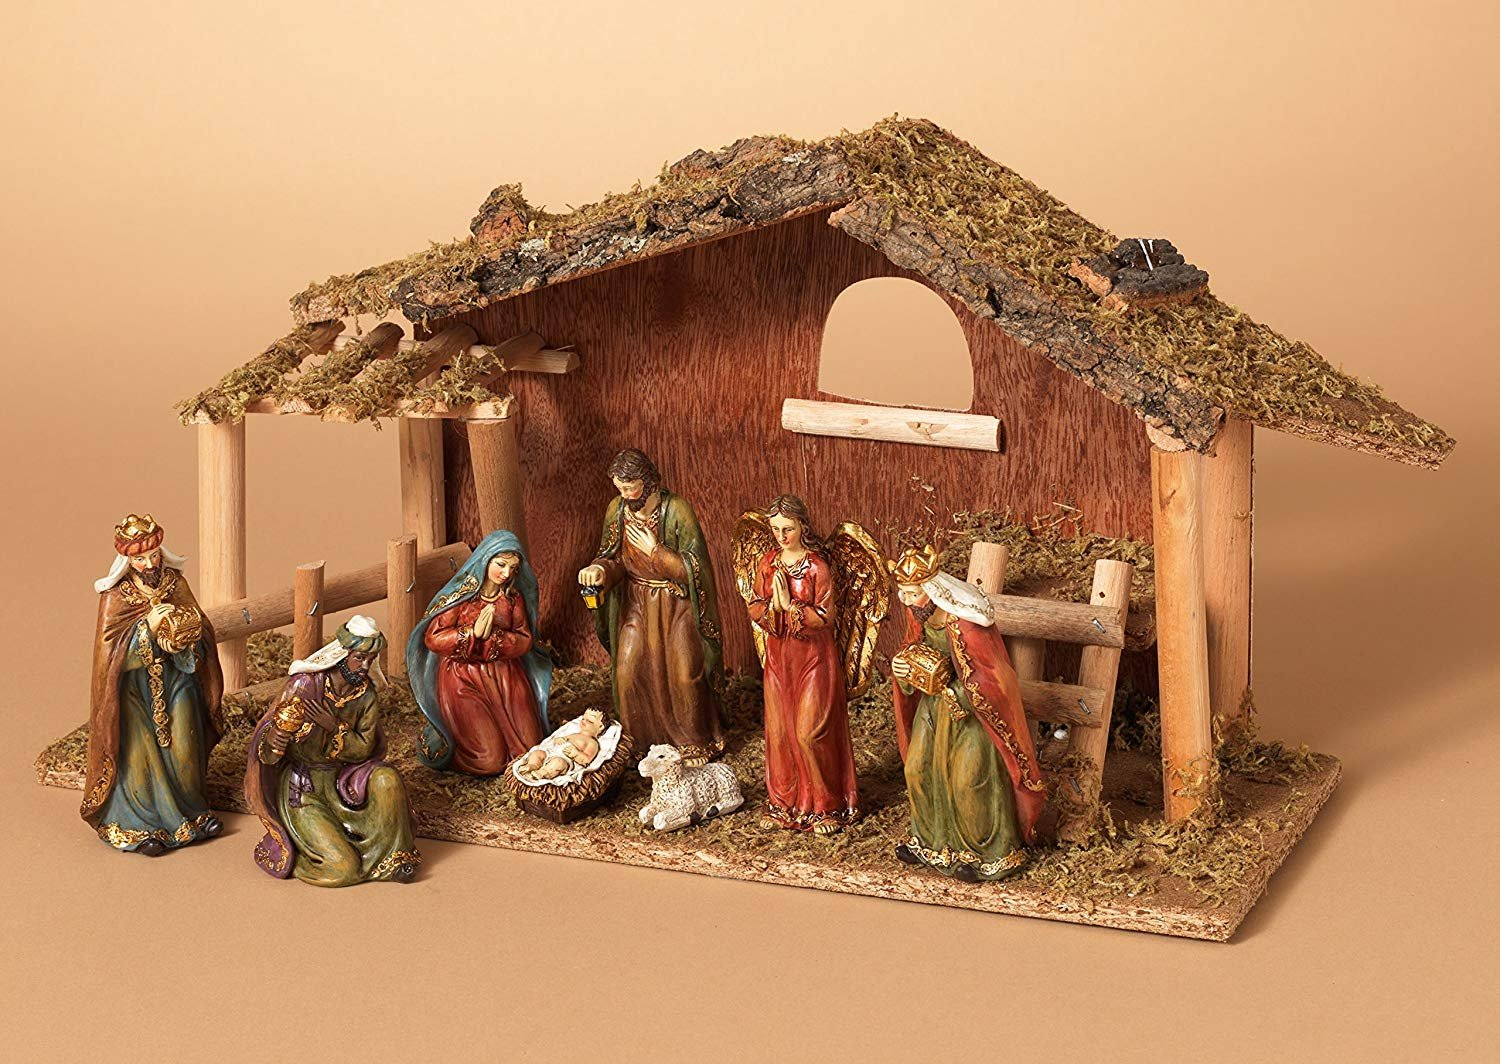 Christmas Nativity 12 pc Resin Set with Wood Stable Dollhouse Miniature